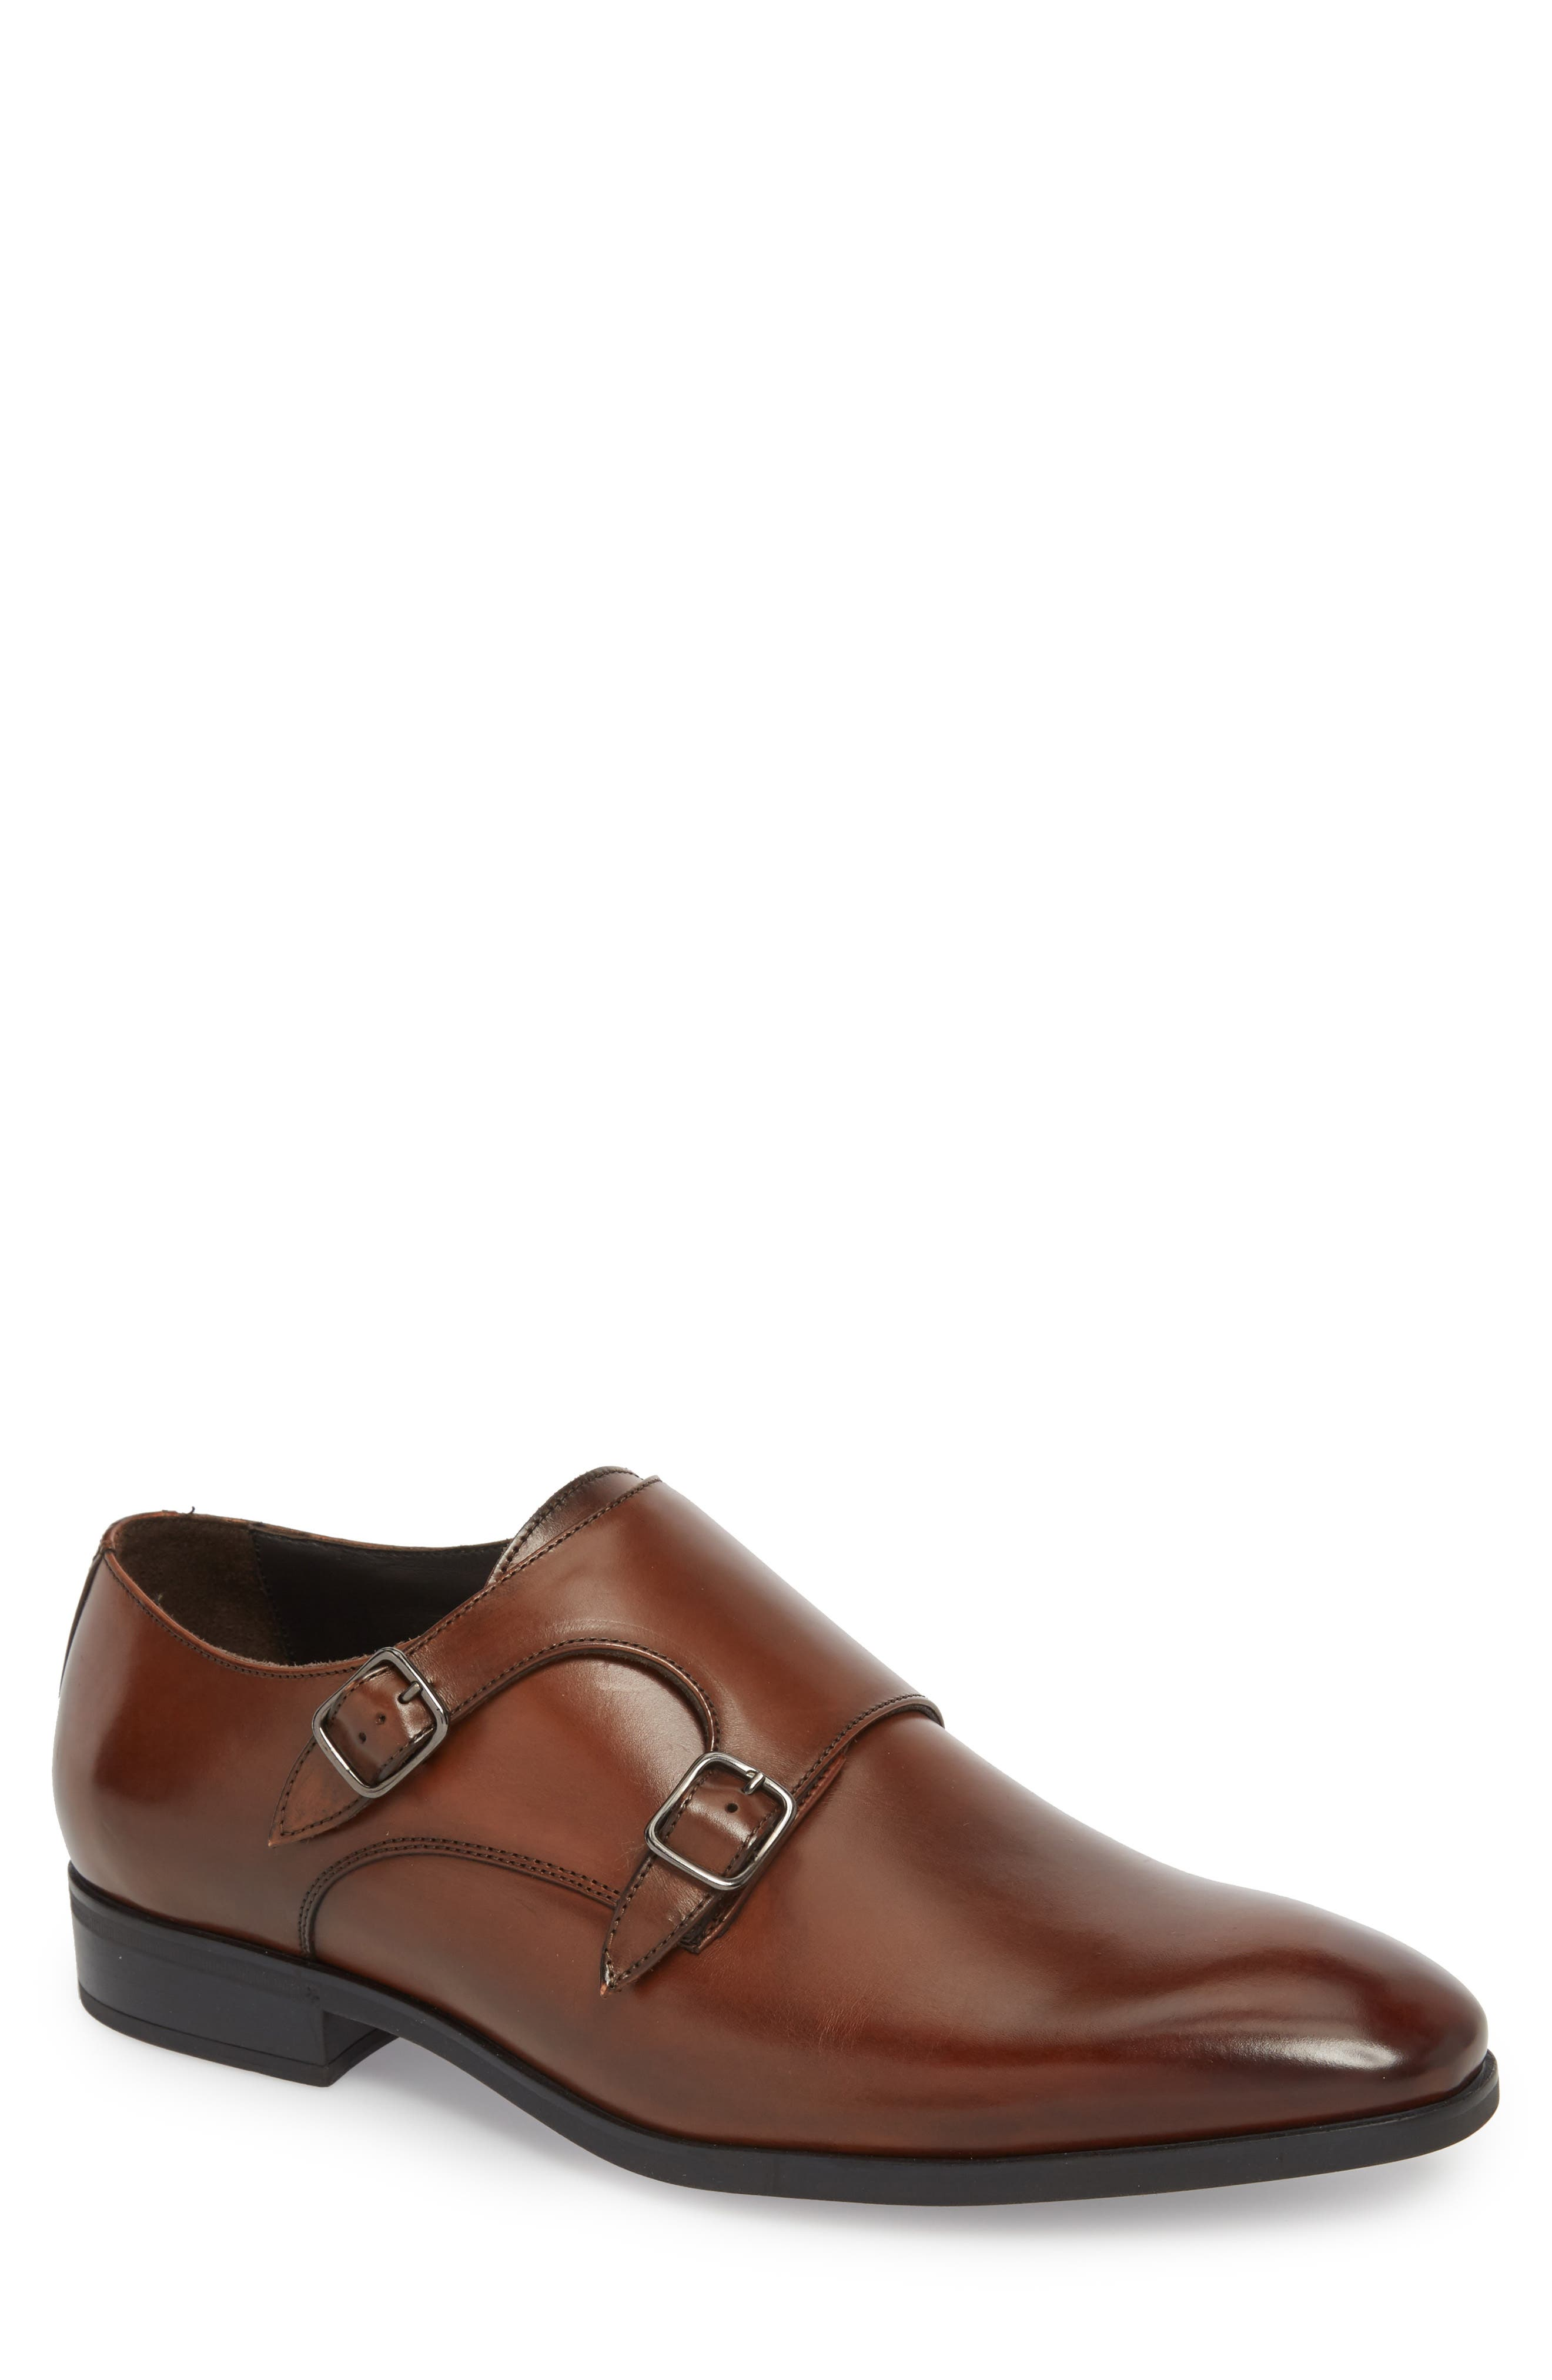 TO BOOT NEW YORK Benjamin Double Monk Strap Shoe, Main, color, TMORO LEATHER